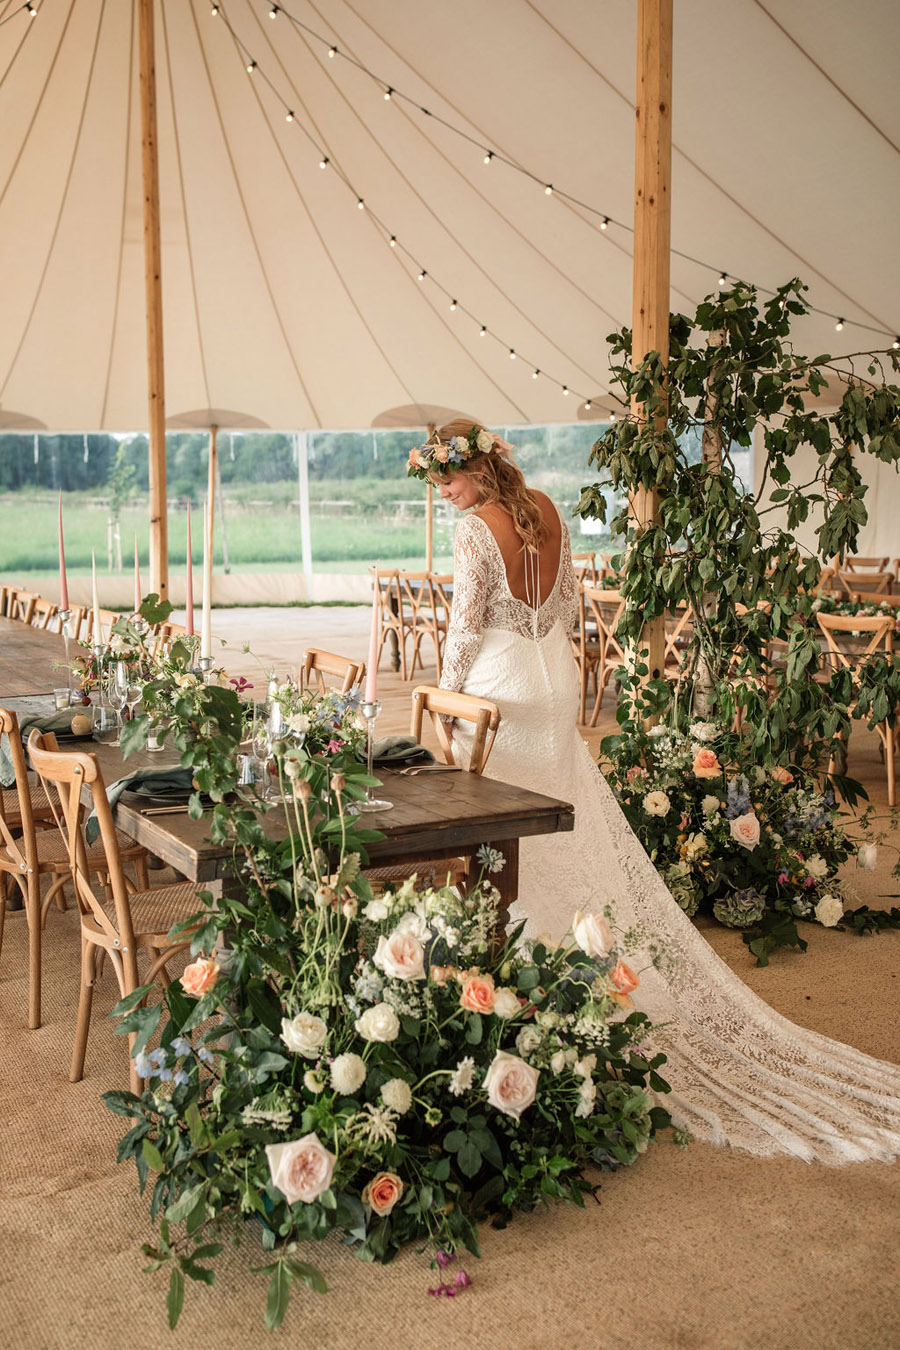 Evening sunset wedding inspiration at Willow Grange Farm, with Becky Harley Photography (36)